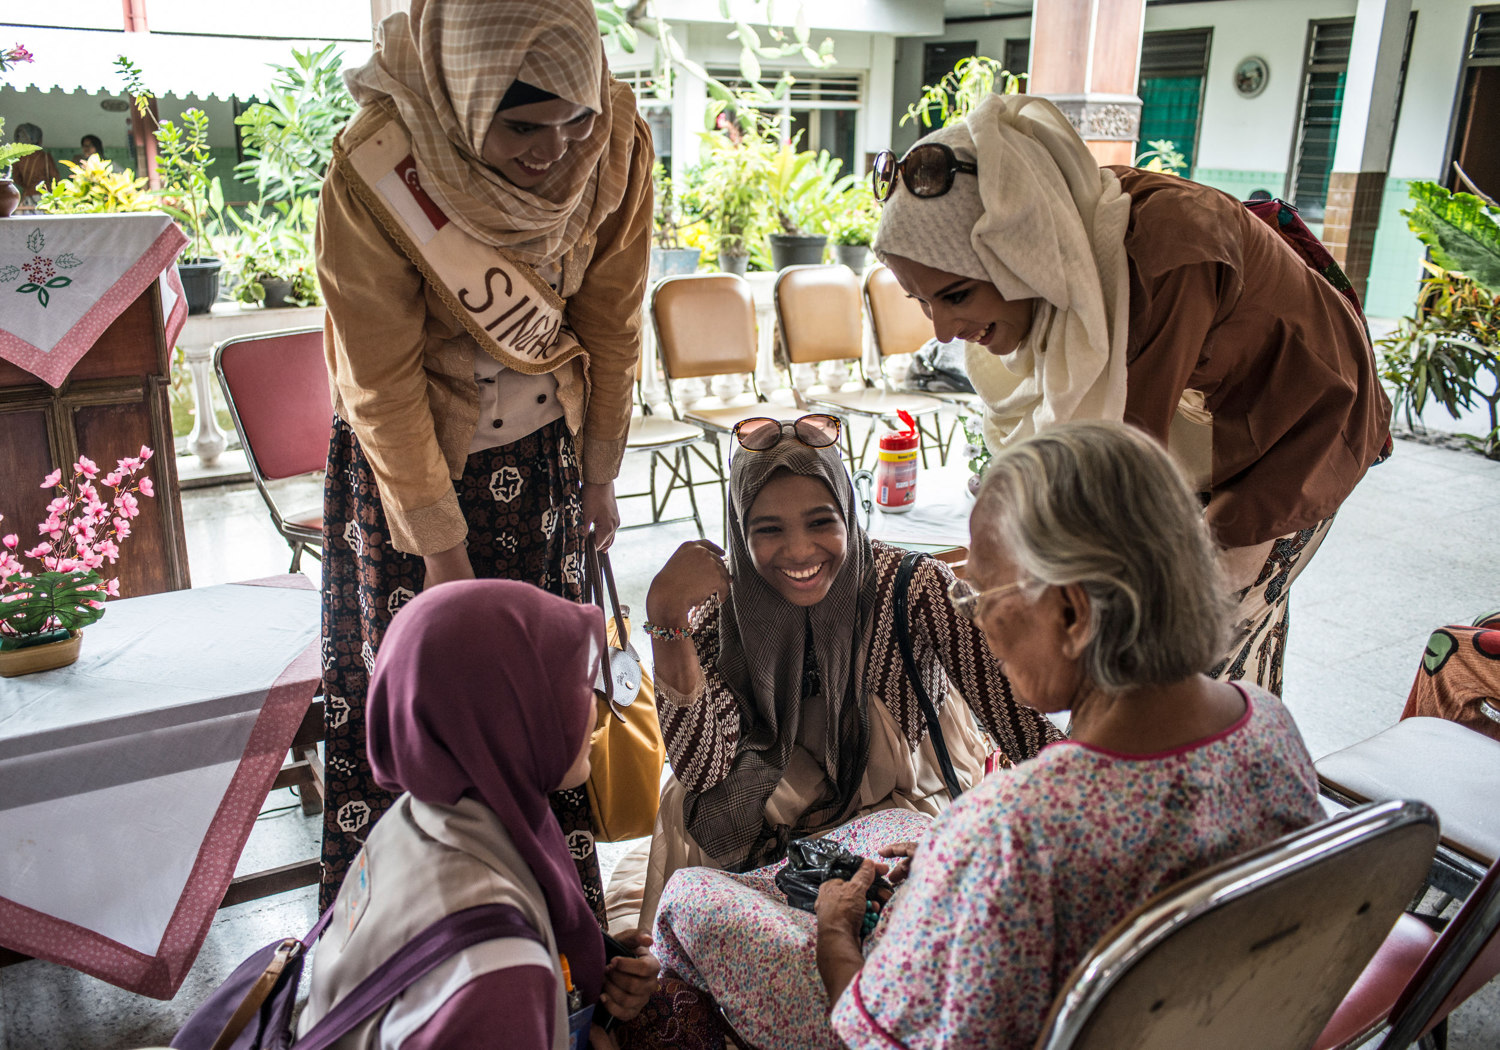 At an elderly home, the girls are tested on their charity and compassion.